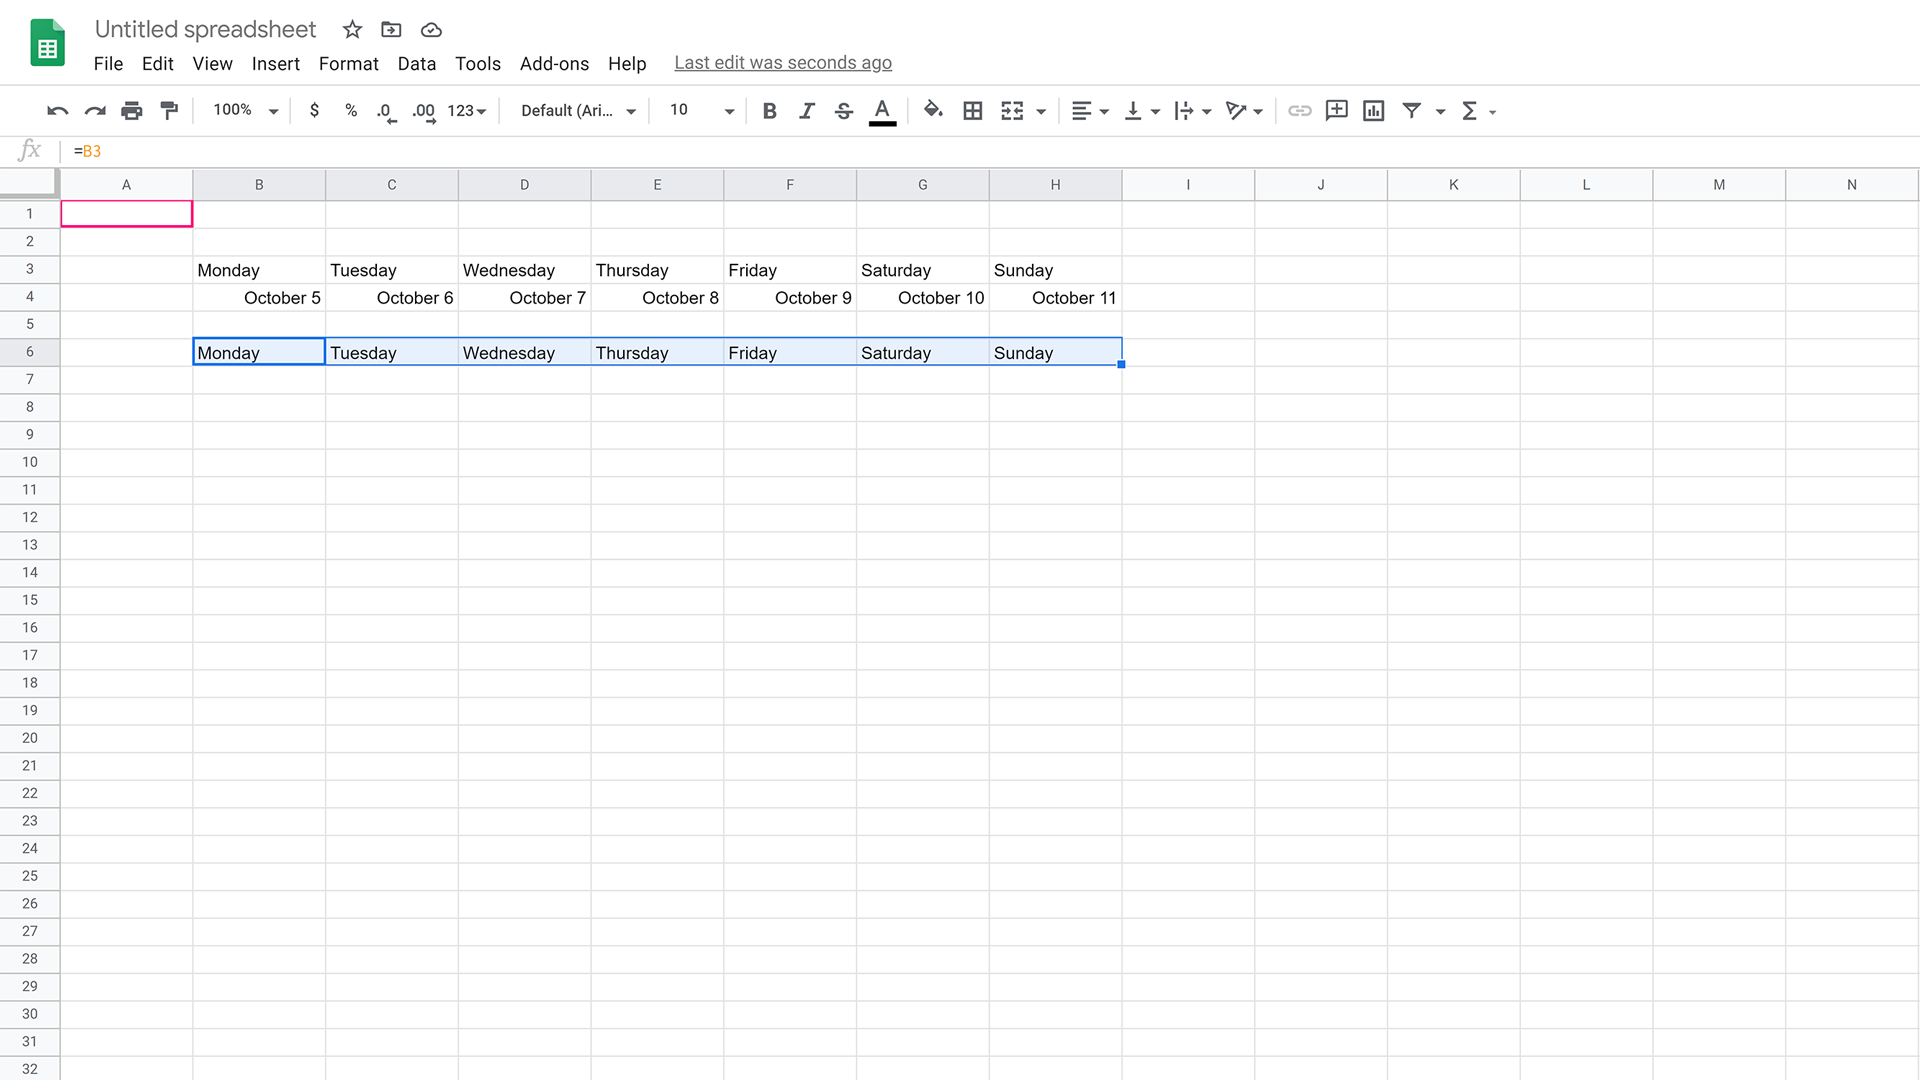 Repeat the click and drag process to fill in the weekdays automatically.